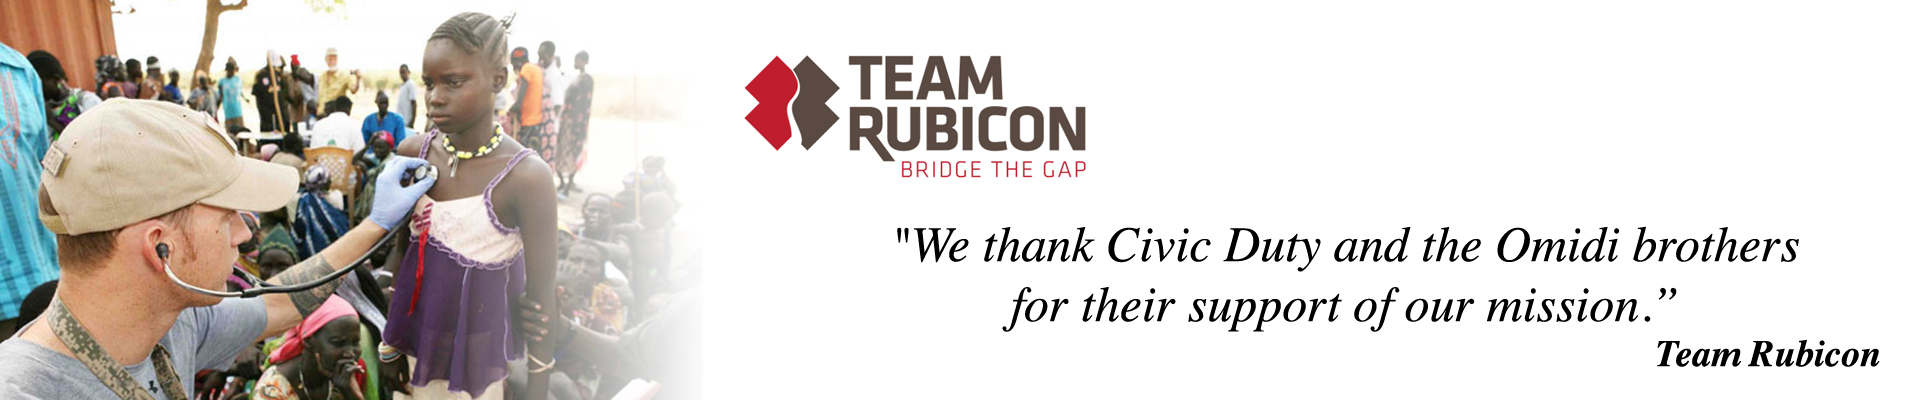 civid duty team rubicon